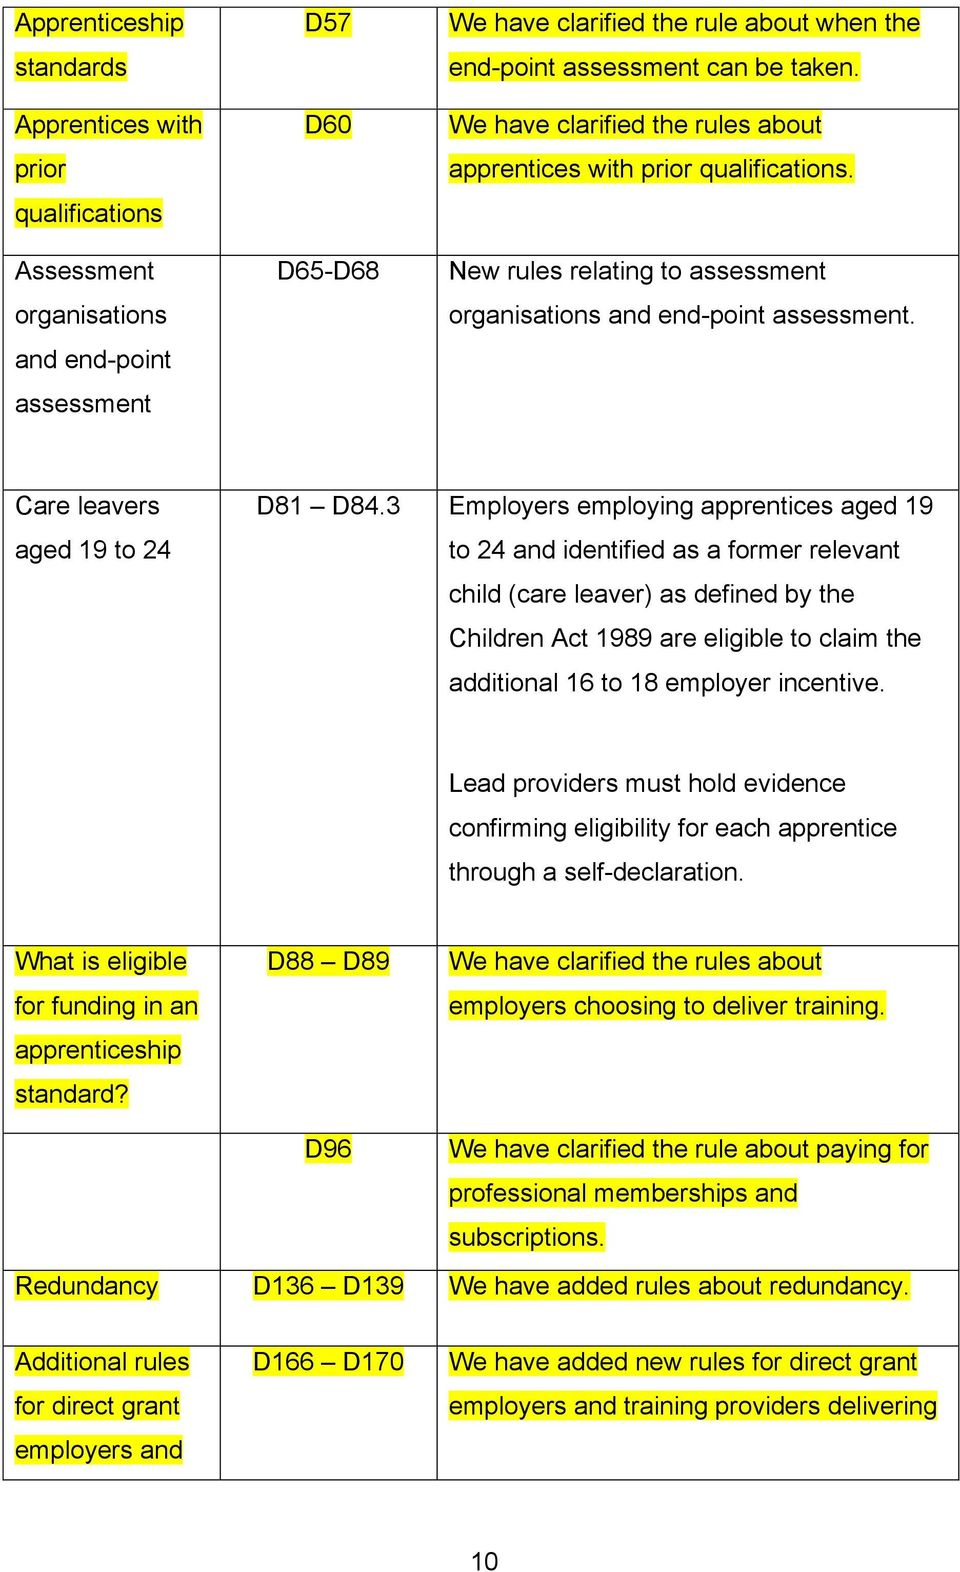 3 Employers employing apprentices aged 19 to 24 and identified as a former relevant child (care leaver) as defined by the Children Act 1989 are eligible to claim the additional 16 to 18 employer